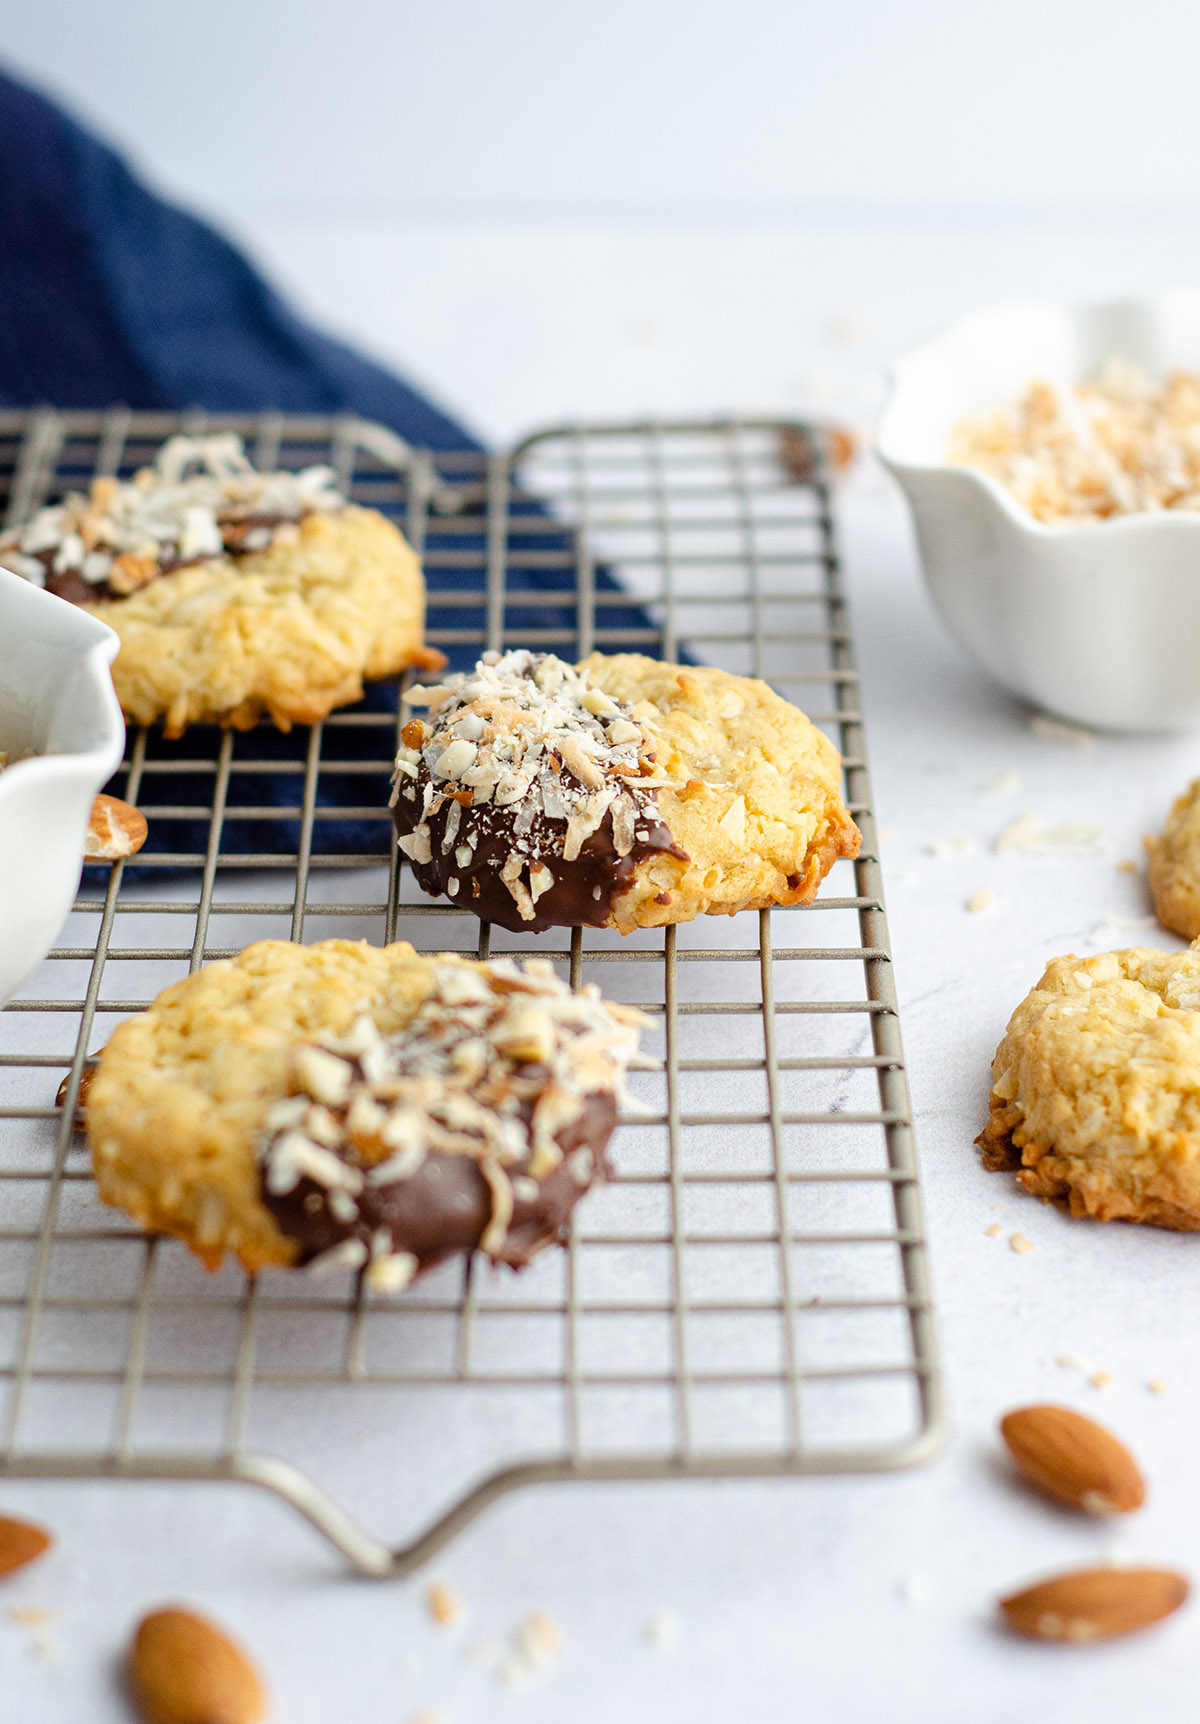 Easy coconut drop cookies, dipped in chocolate and sprinkled with toasted coconut and chopped almonds.